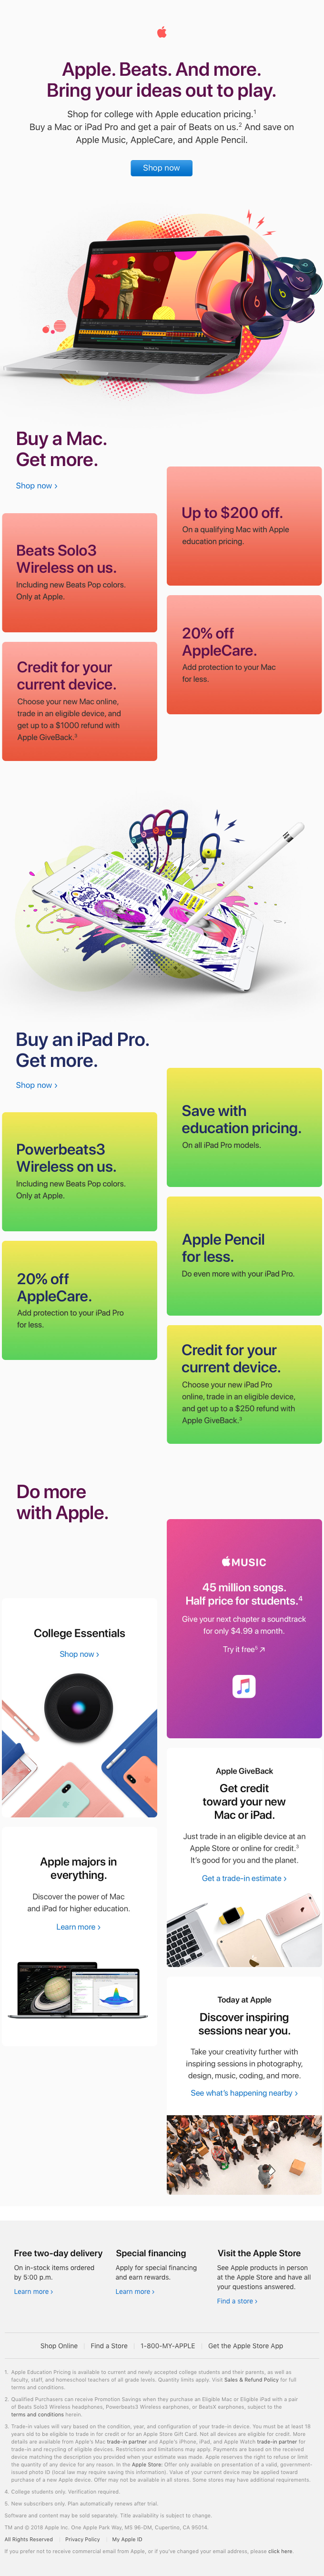 Get Beats when you buy a Mac or iPad Pro. Only at Apple.